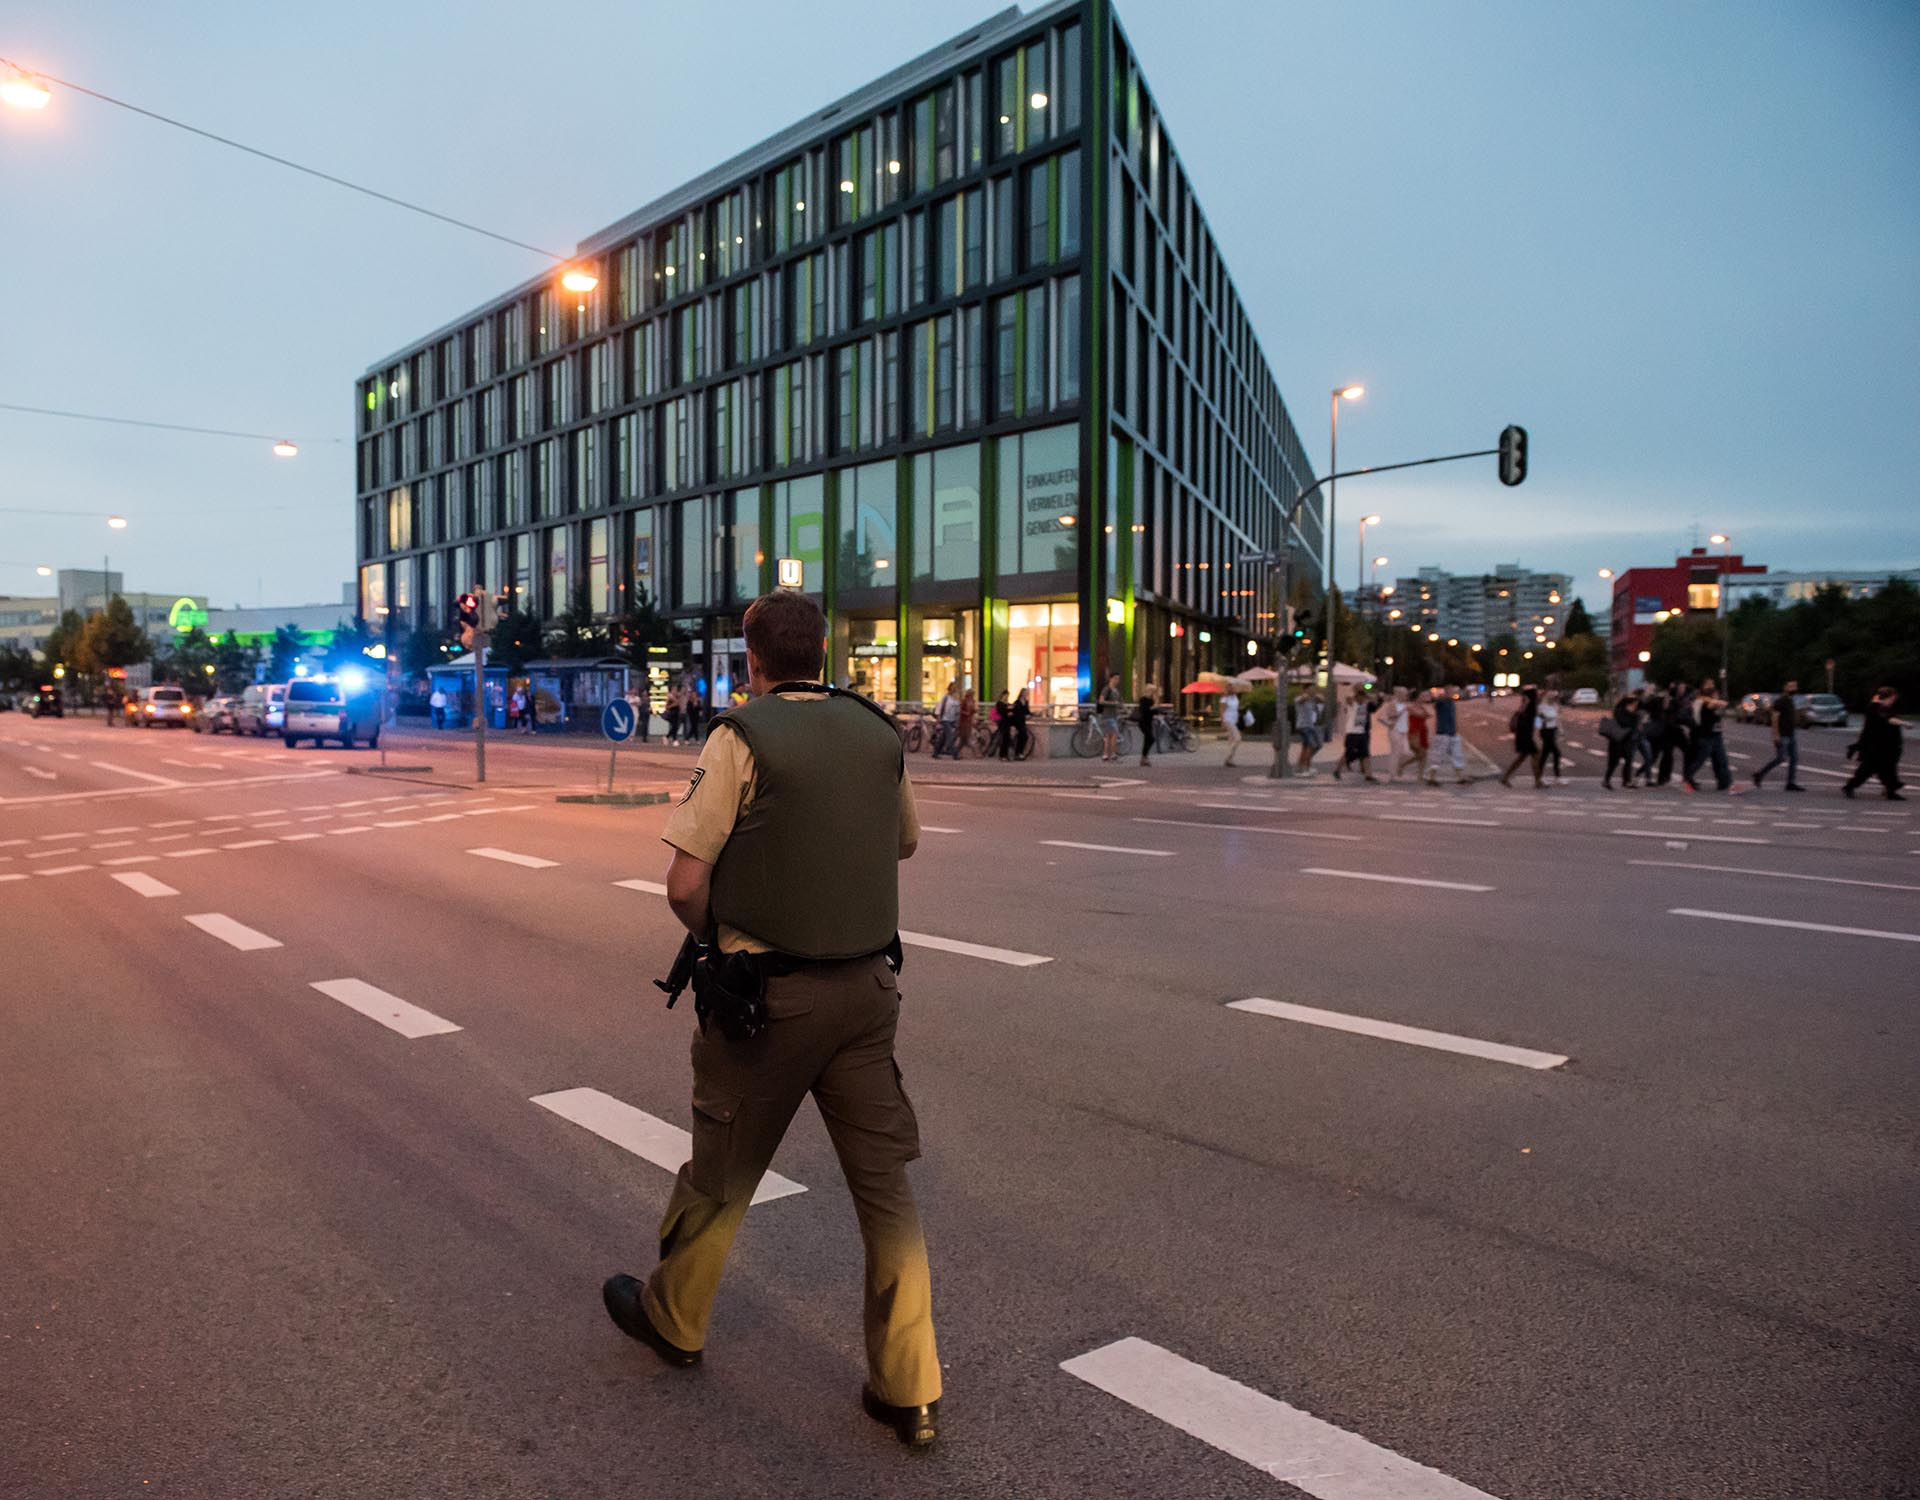 A policeman patrols as people are beeing evacuated (R) from a shopping mall in Munich on July 22, 2016 following a shooting earlier. At least one person has been killed and 10 wounded in a shooting at a shopping centre in Munich on Friday, German police said. / AFP PHOTO / STRINGER